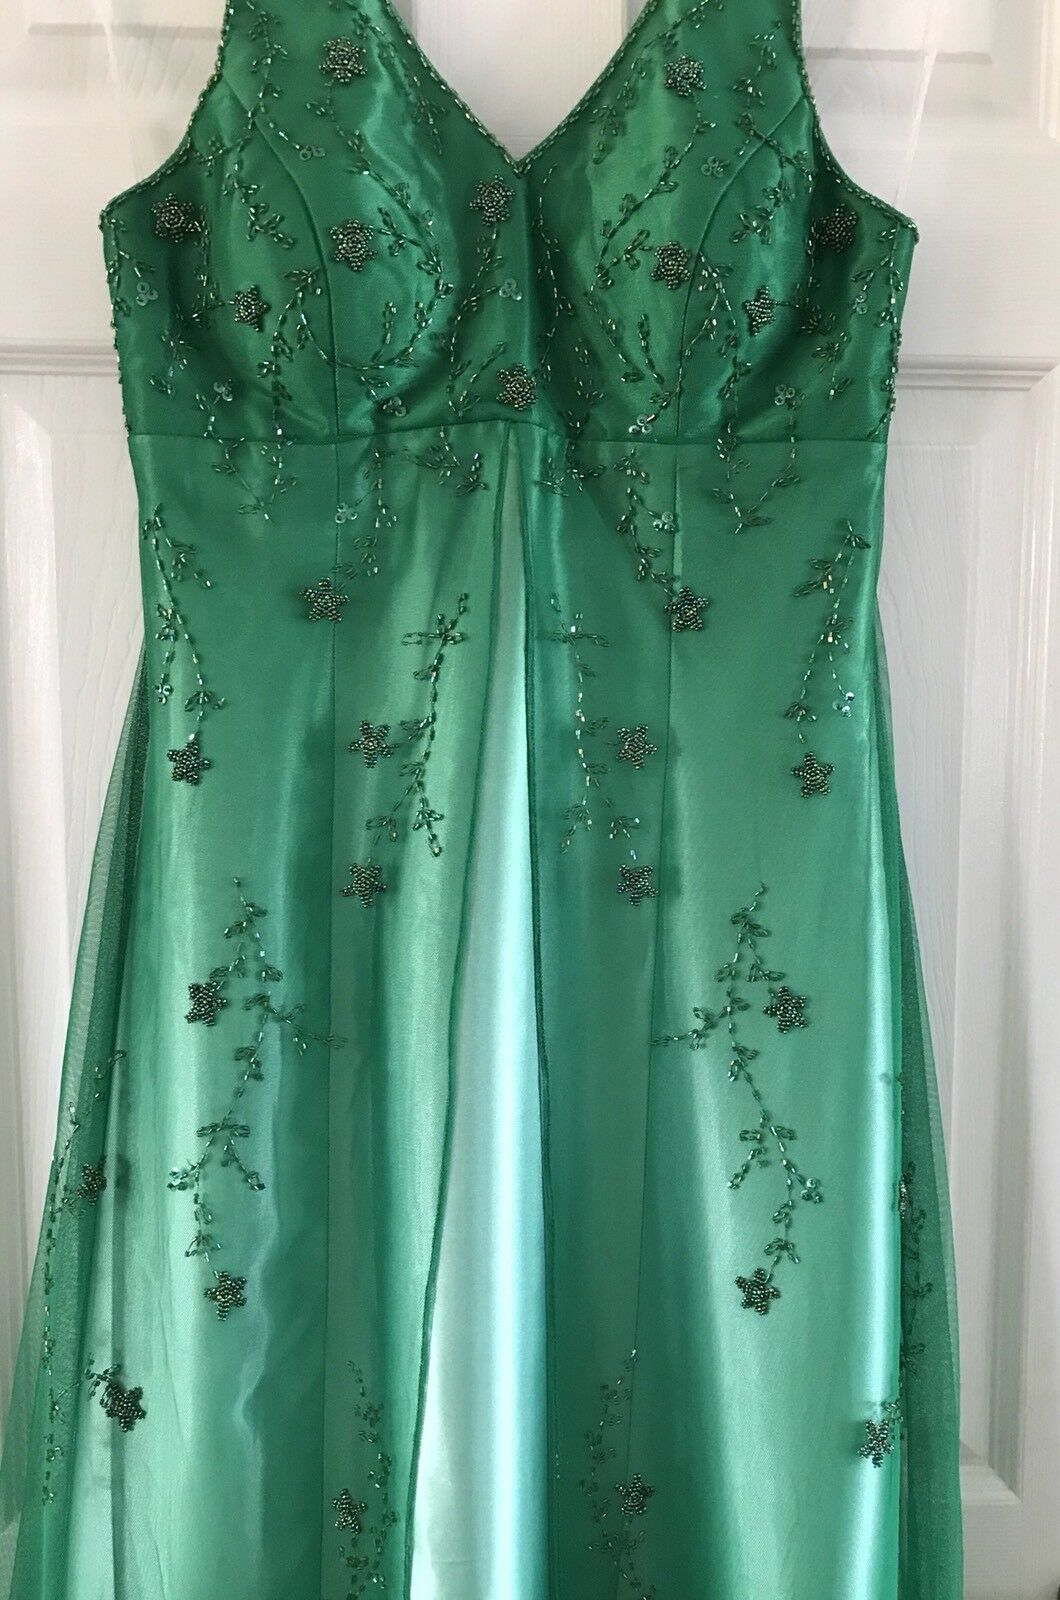 Stunning TWO ROADS Emerald Green Full Length Dress With Beaded Net Overlay